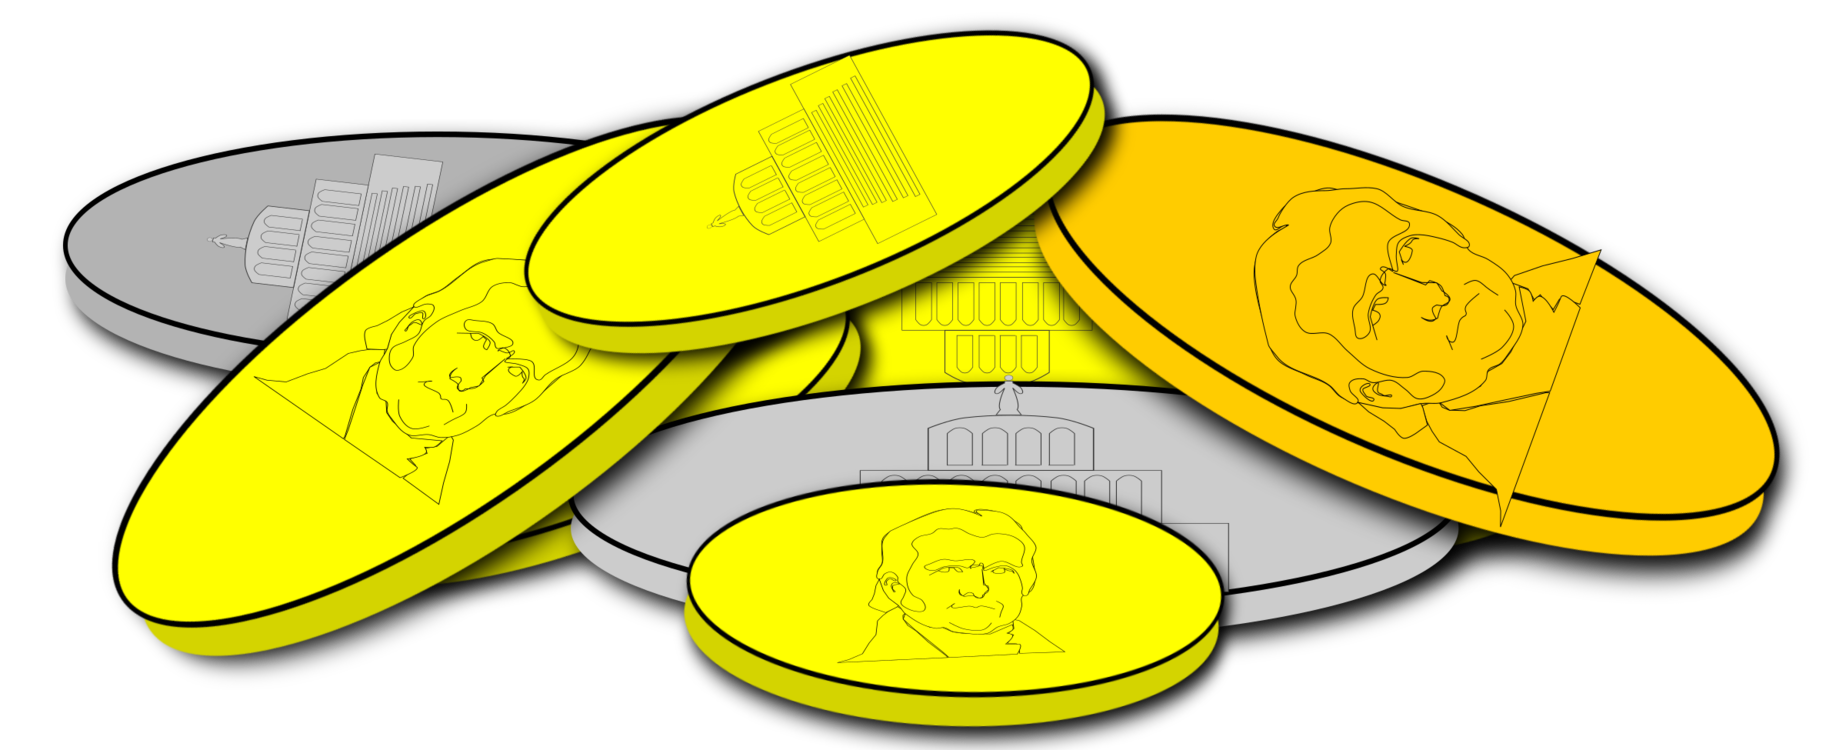 Coin free commercial. Gold clipart gold silver image royalty free library